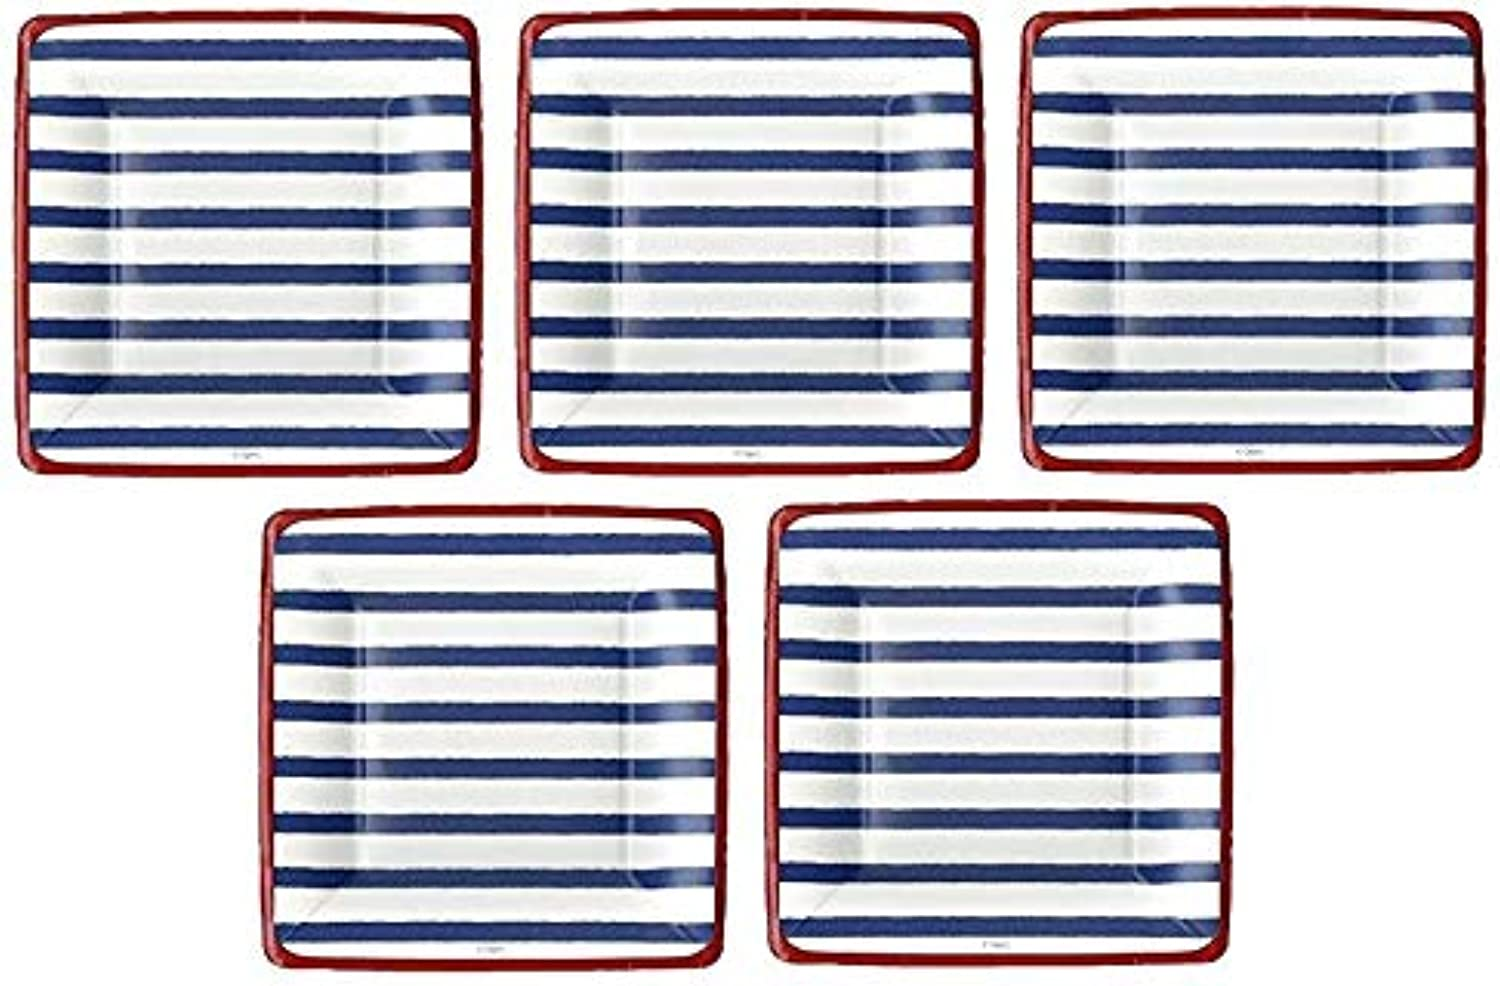 4th of July Party Supplies Paper Plates Salad Desert Size Bretagne bluee 16 Count 7 inch Square (5-(Pack))